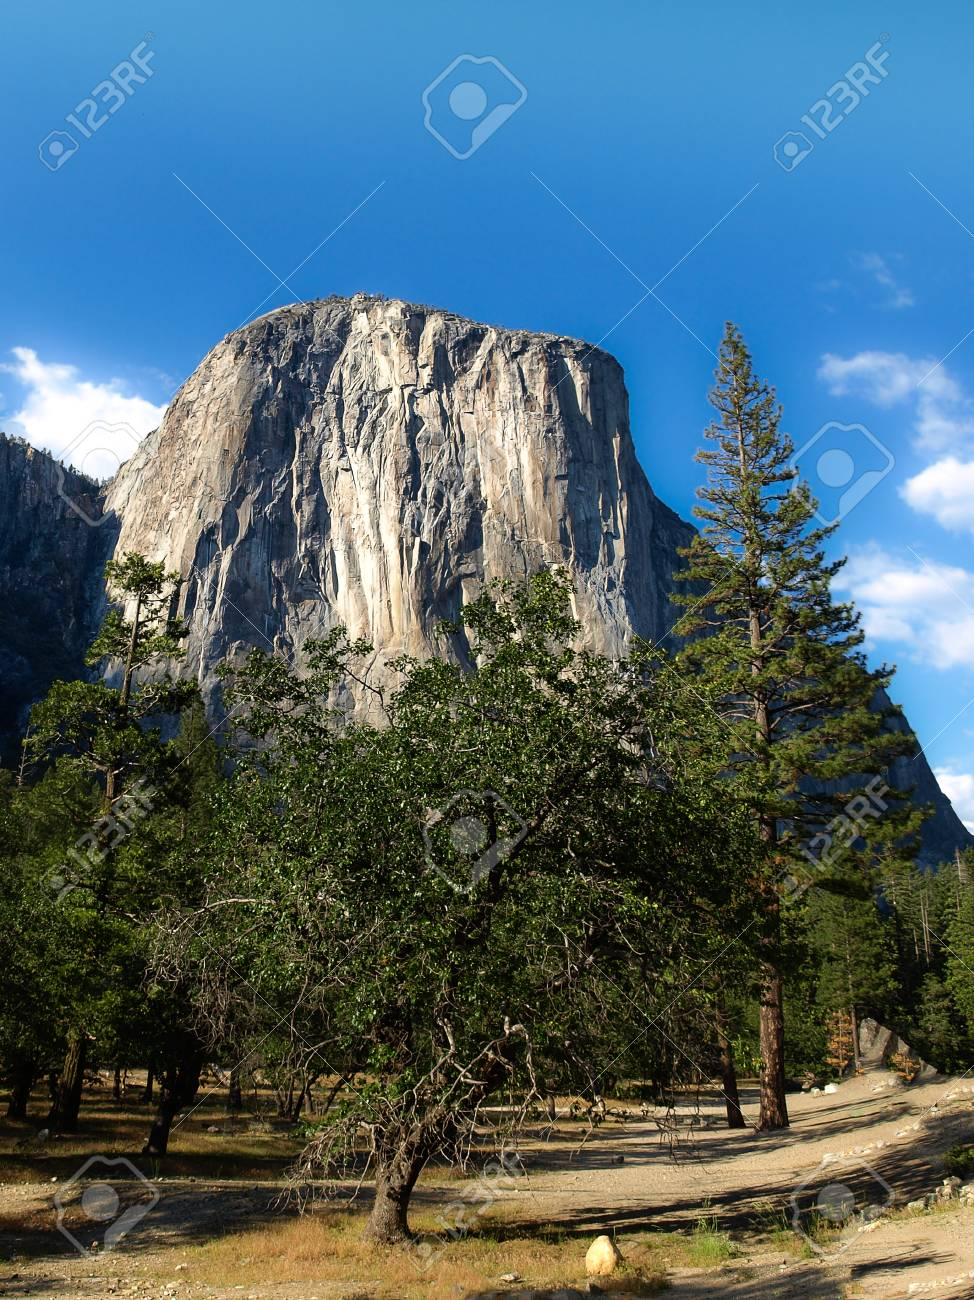 el capitan rock close-up in yosemite valley national park on.. stock